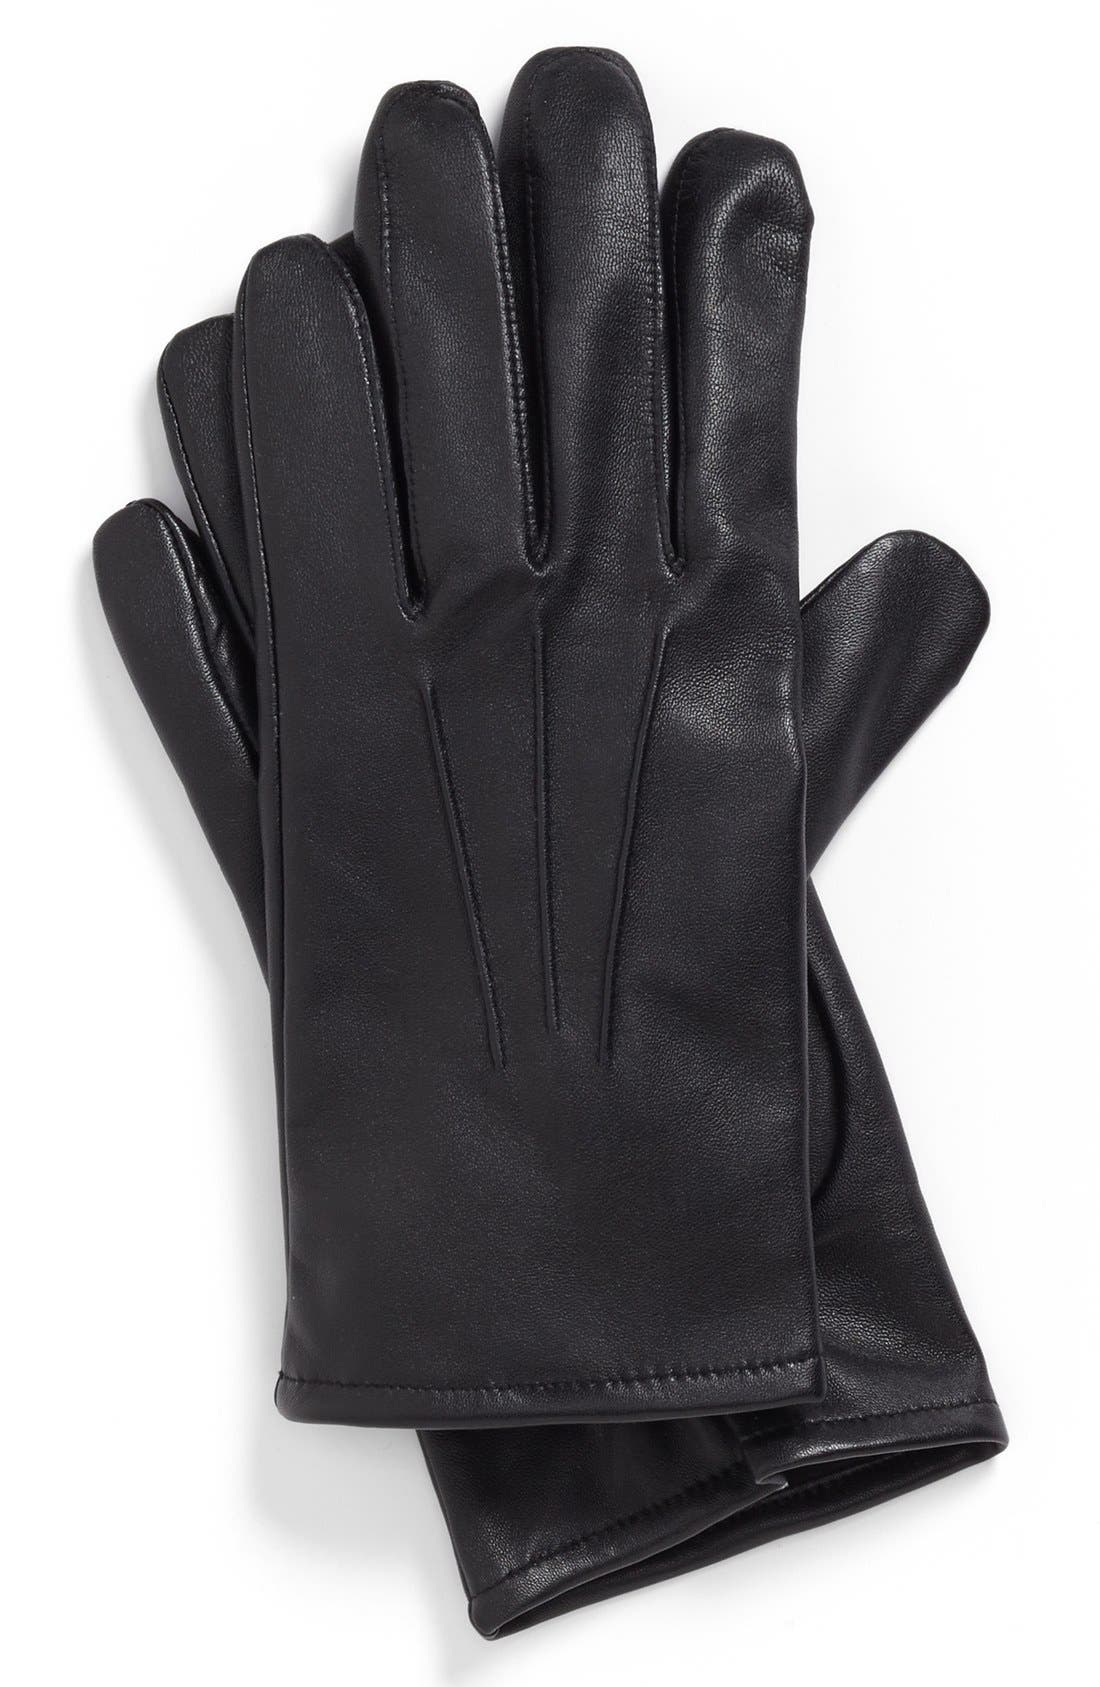 Alternate Image 1 Selected - John W. Nordstrom® Nappa Leather Gloves